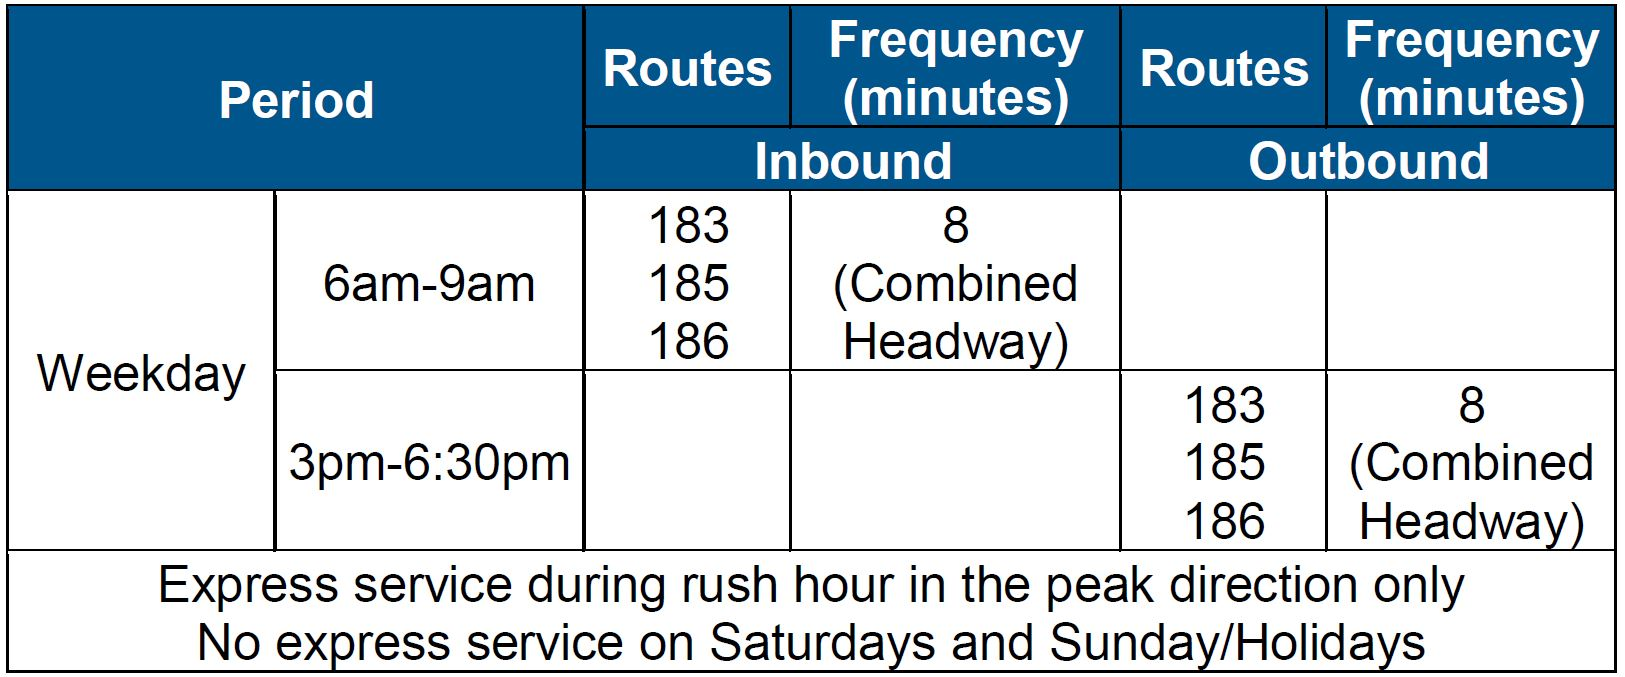 Table of General Frequency/Span of Service for Routes 183, 185, and 186